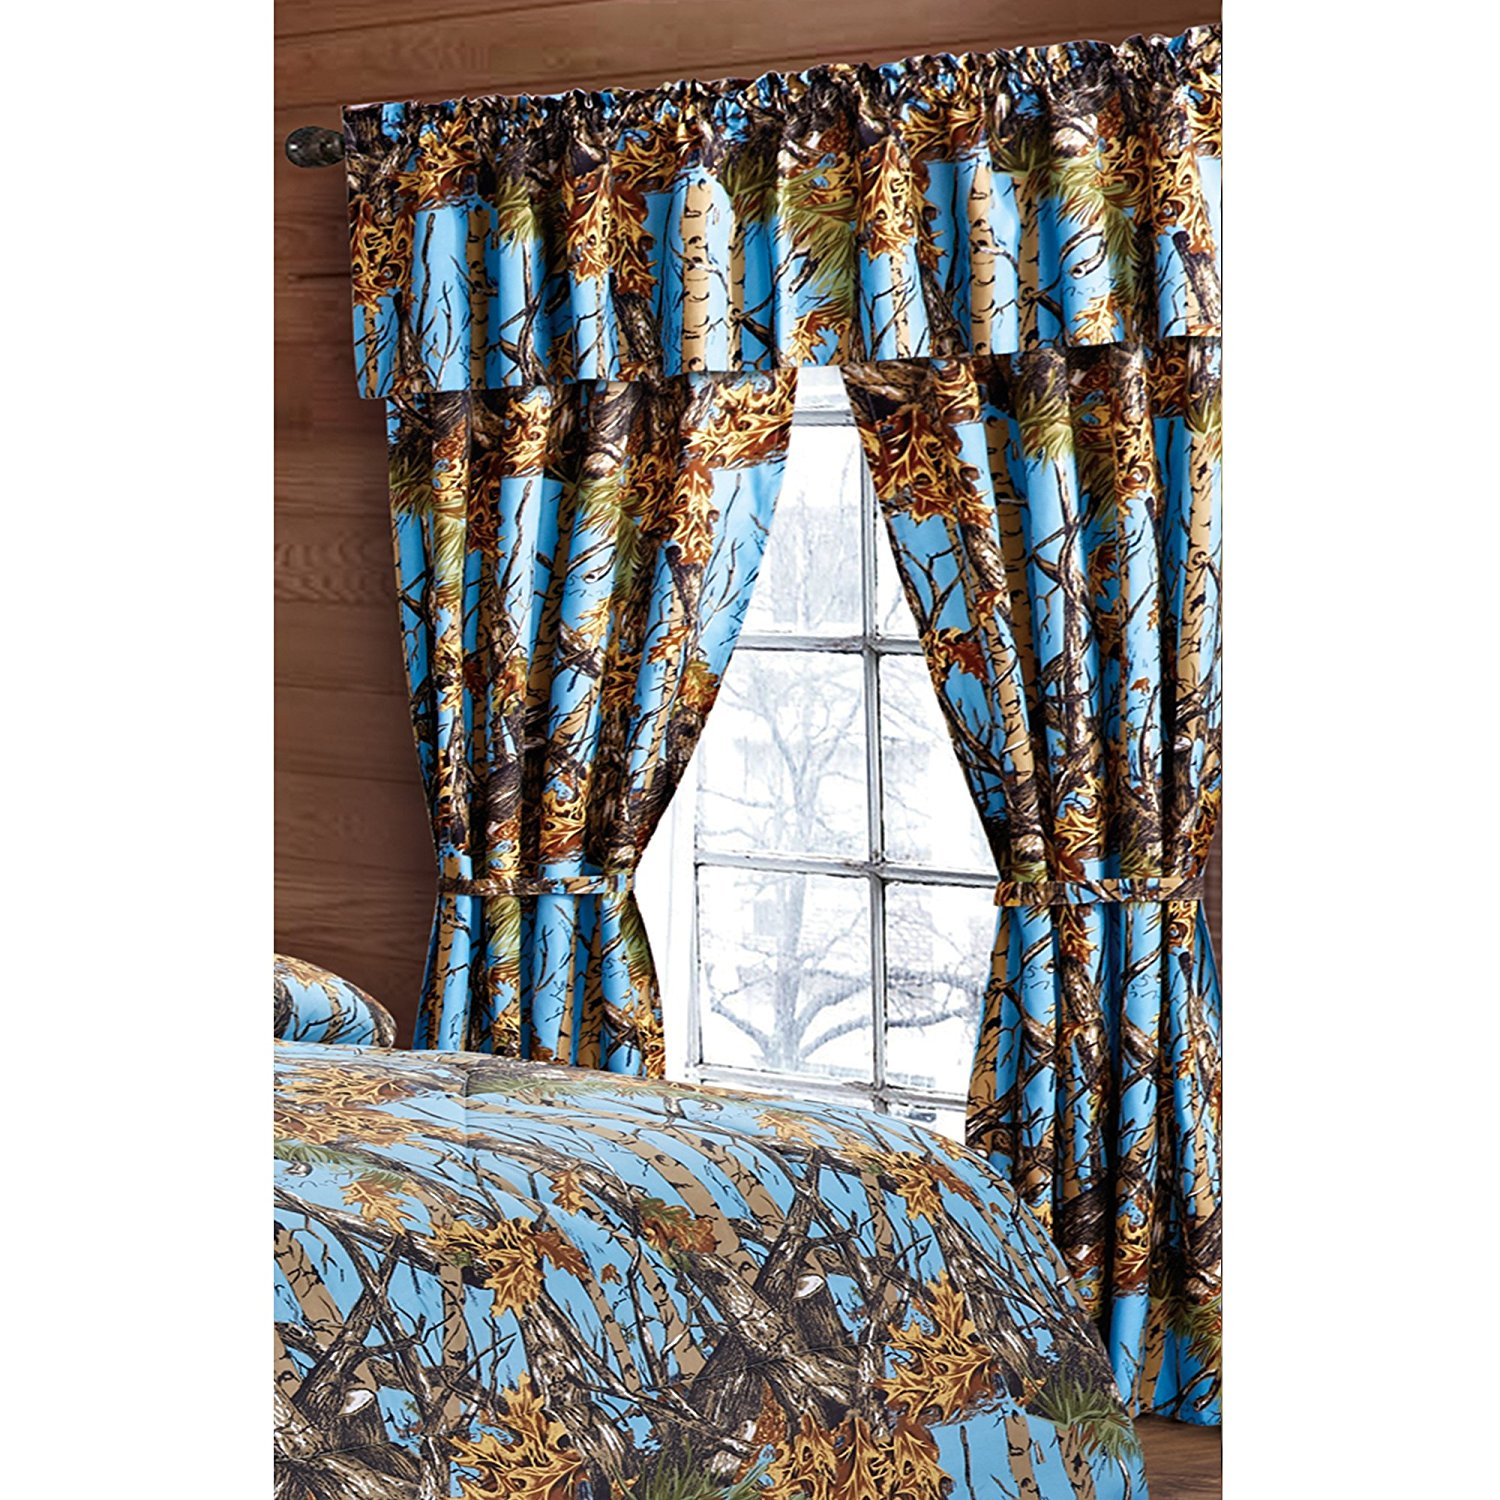 Regal Comfort The Woods Powder Blue Camouflage 5pc Curtain Set For Hunters Cabin or Rustic Lodge Teens Boys and Girls (Curtain , Powder Blue)